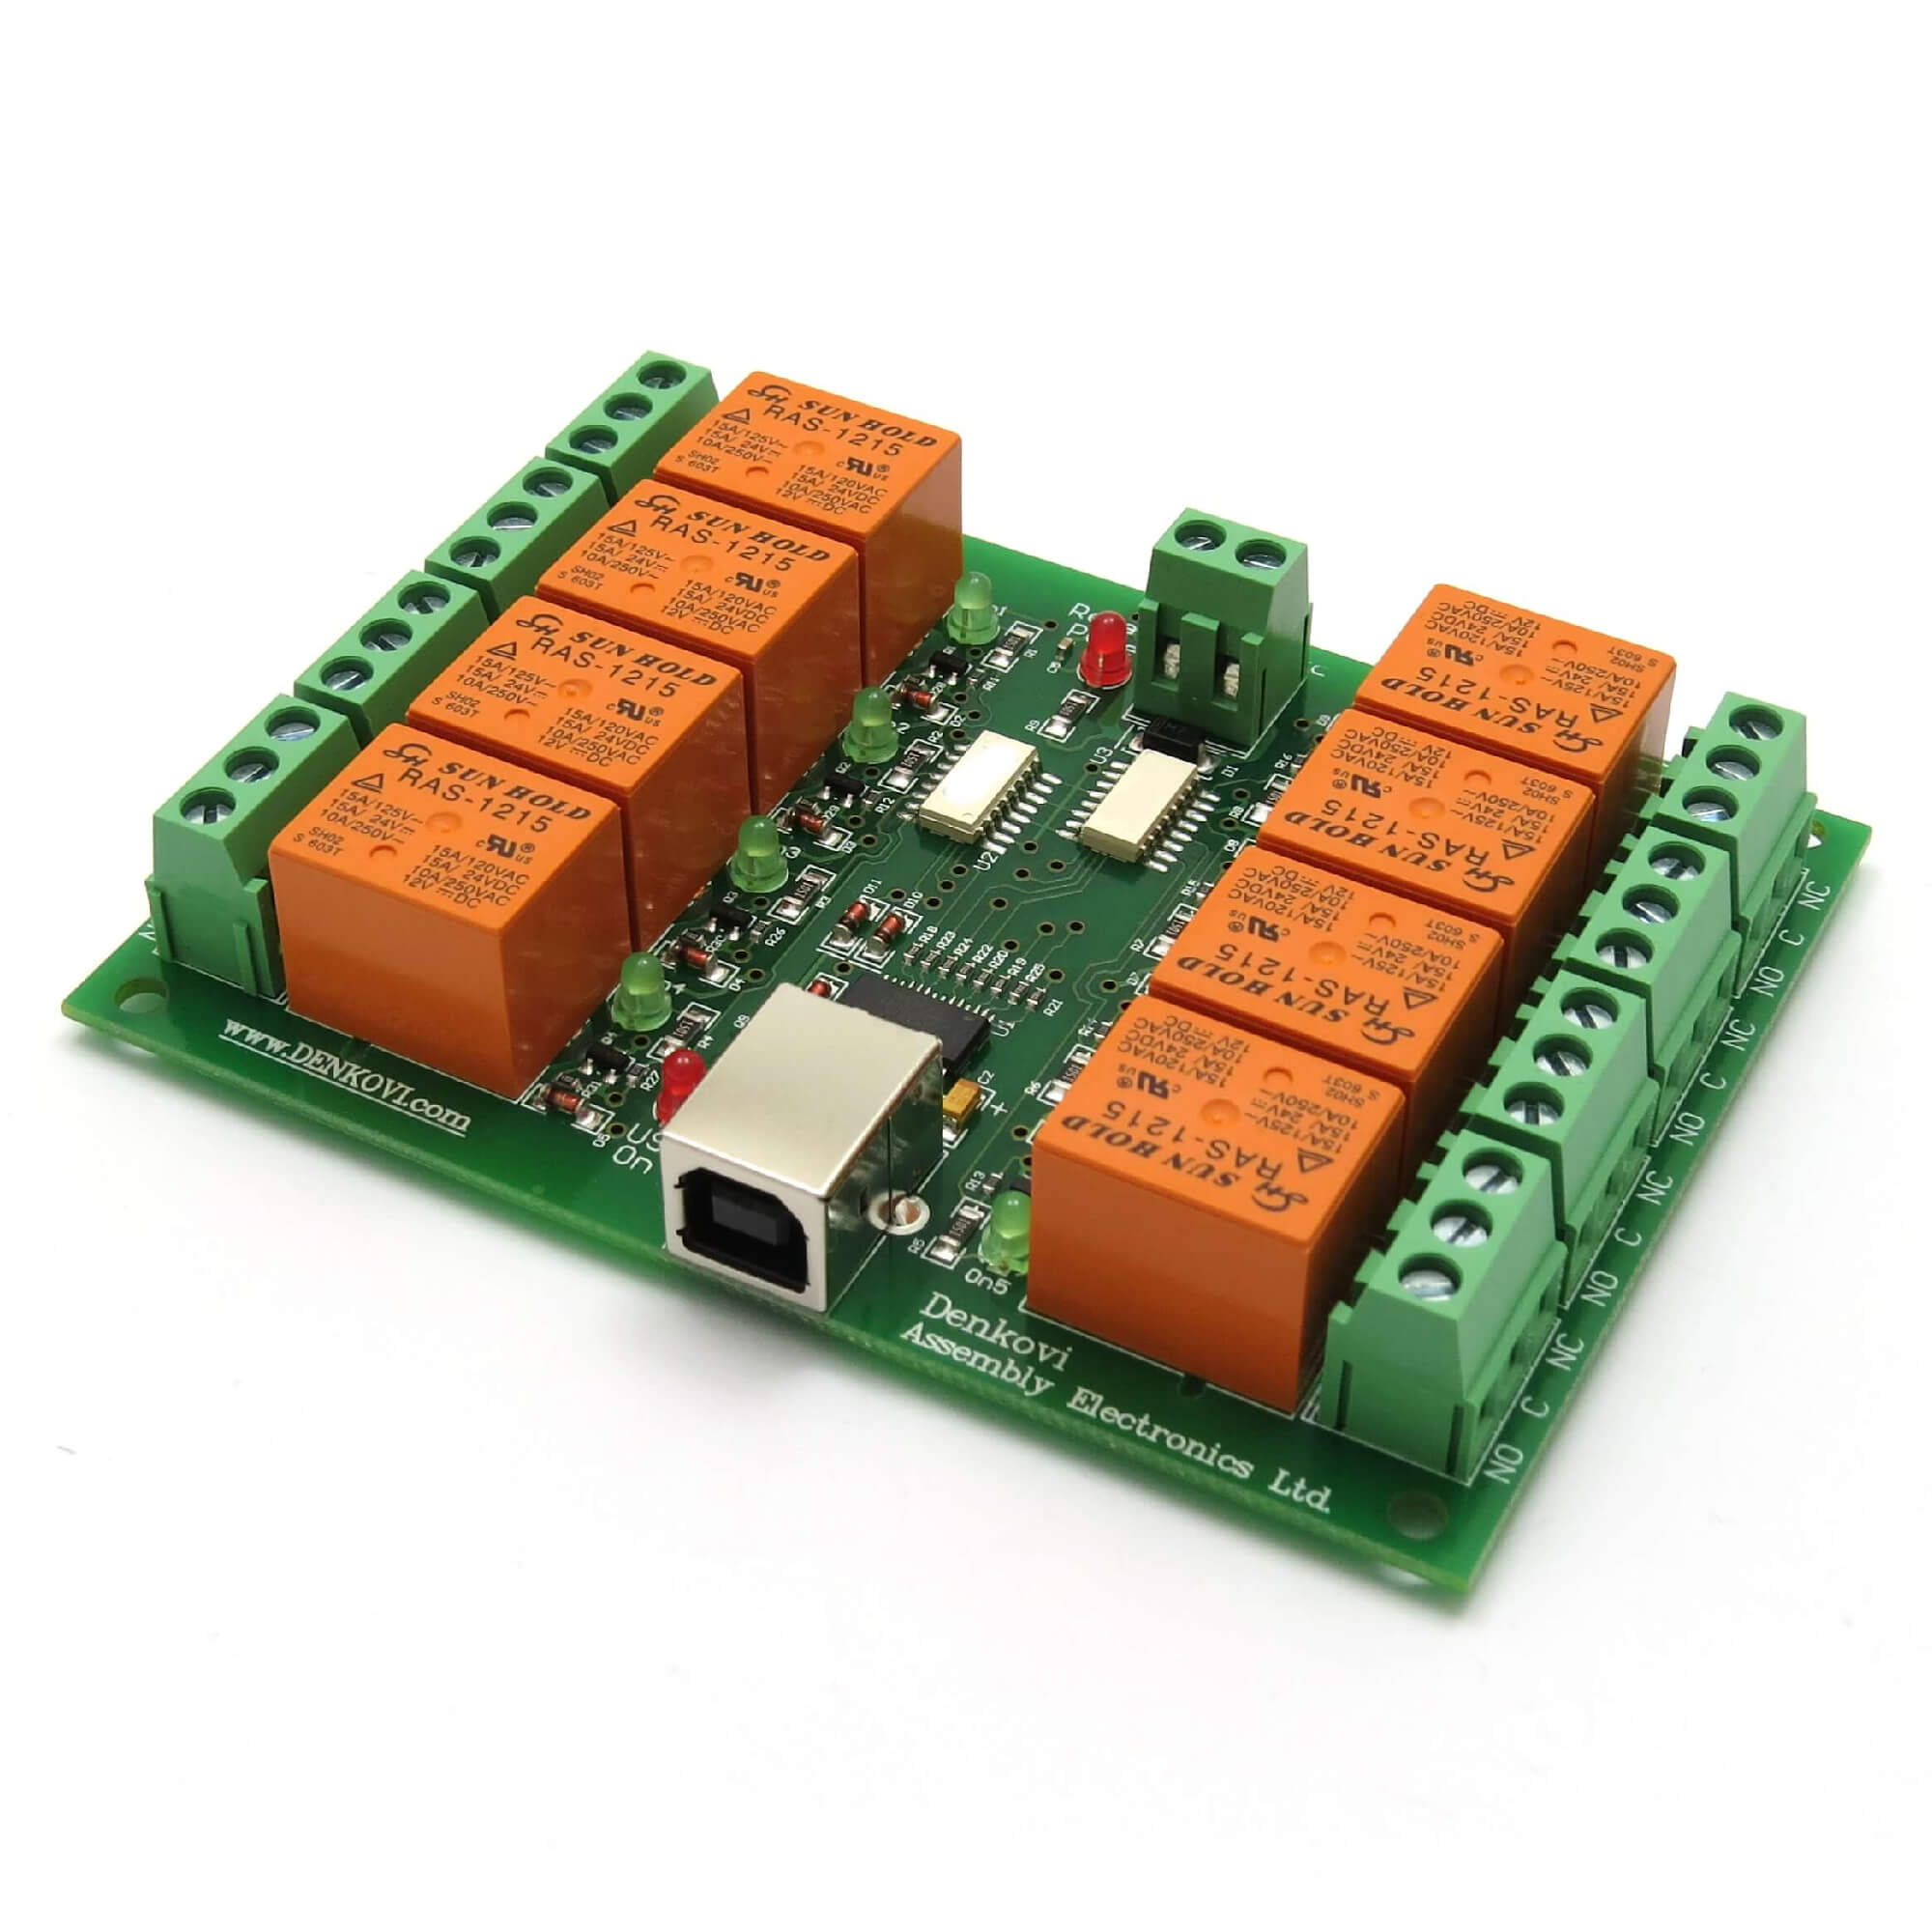 Pc Usb Scheda Otto 8 Canali Rel 12v Software Ebay Electrical Engineering 120vac 10amp Dpdt Relay Question Aquarium Board Controlled